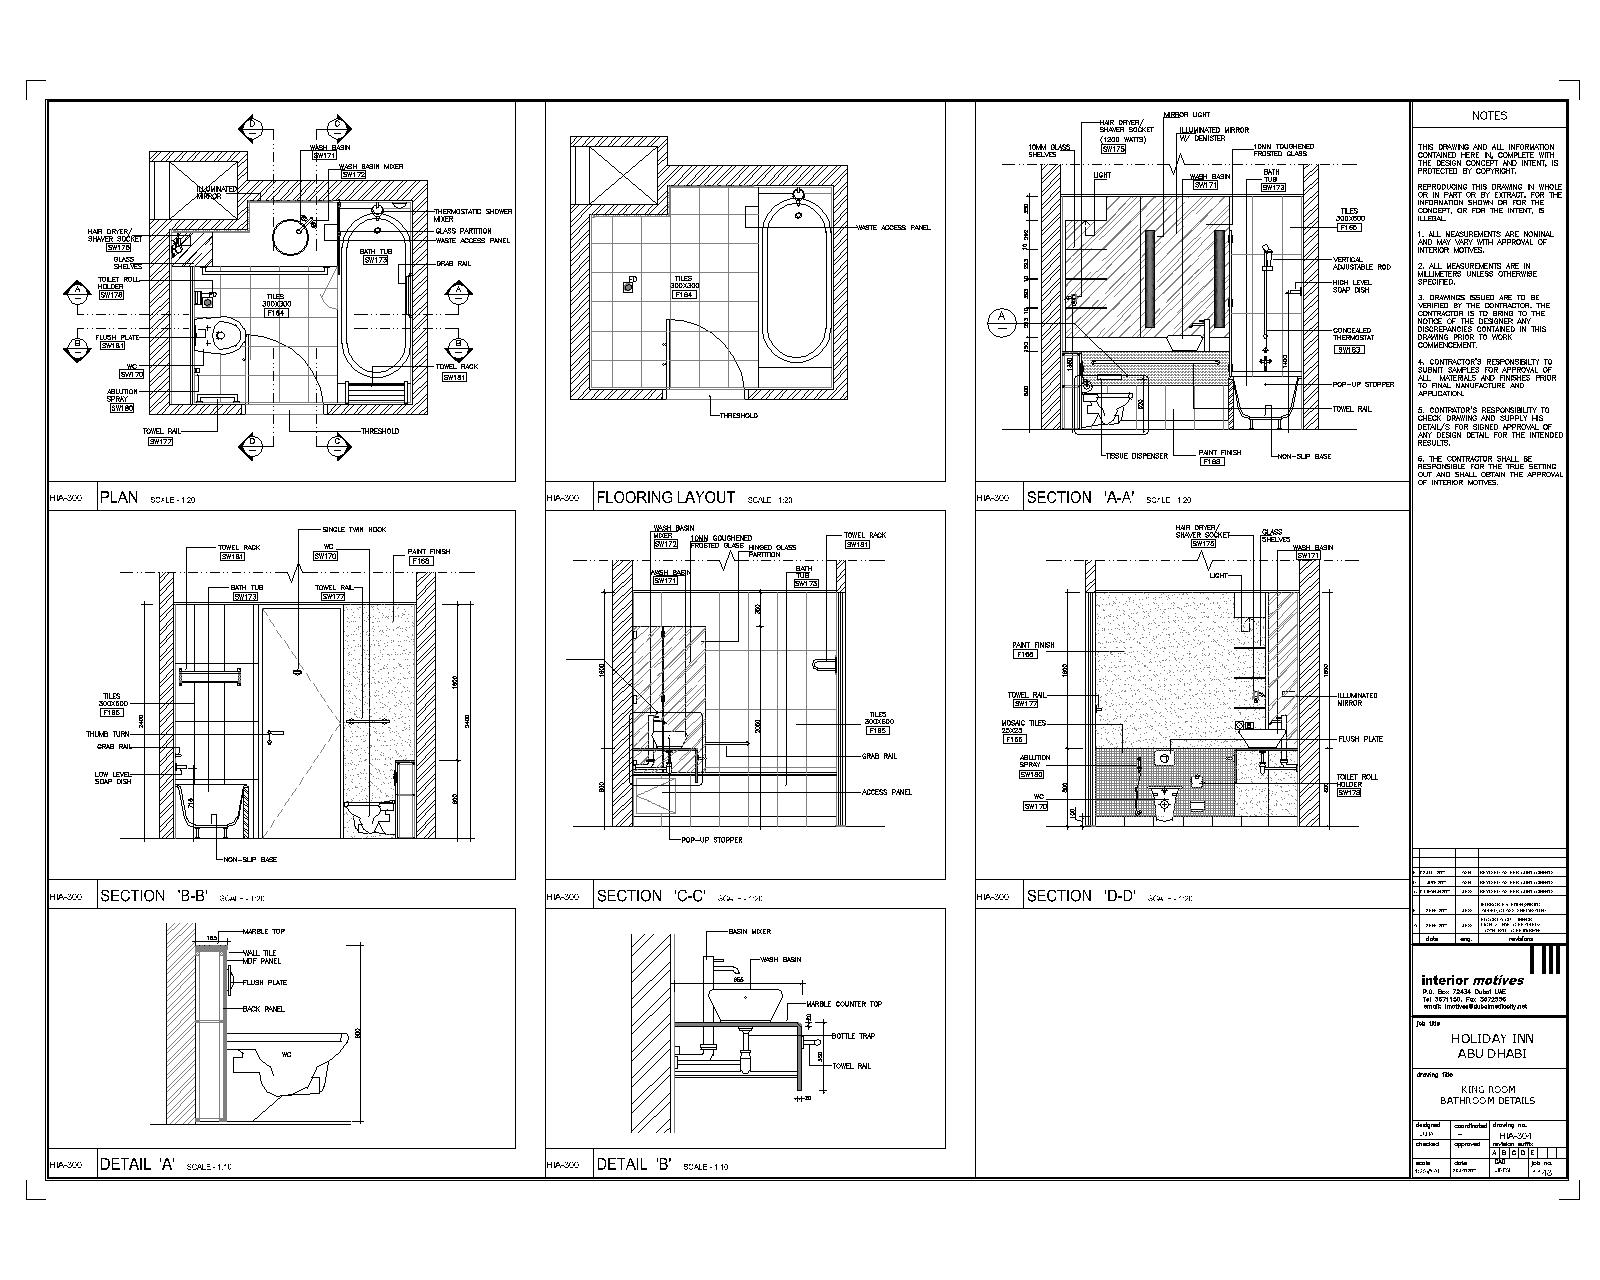 Plan autocad 2d modern house interior design for Autocad house drawings